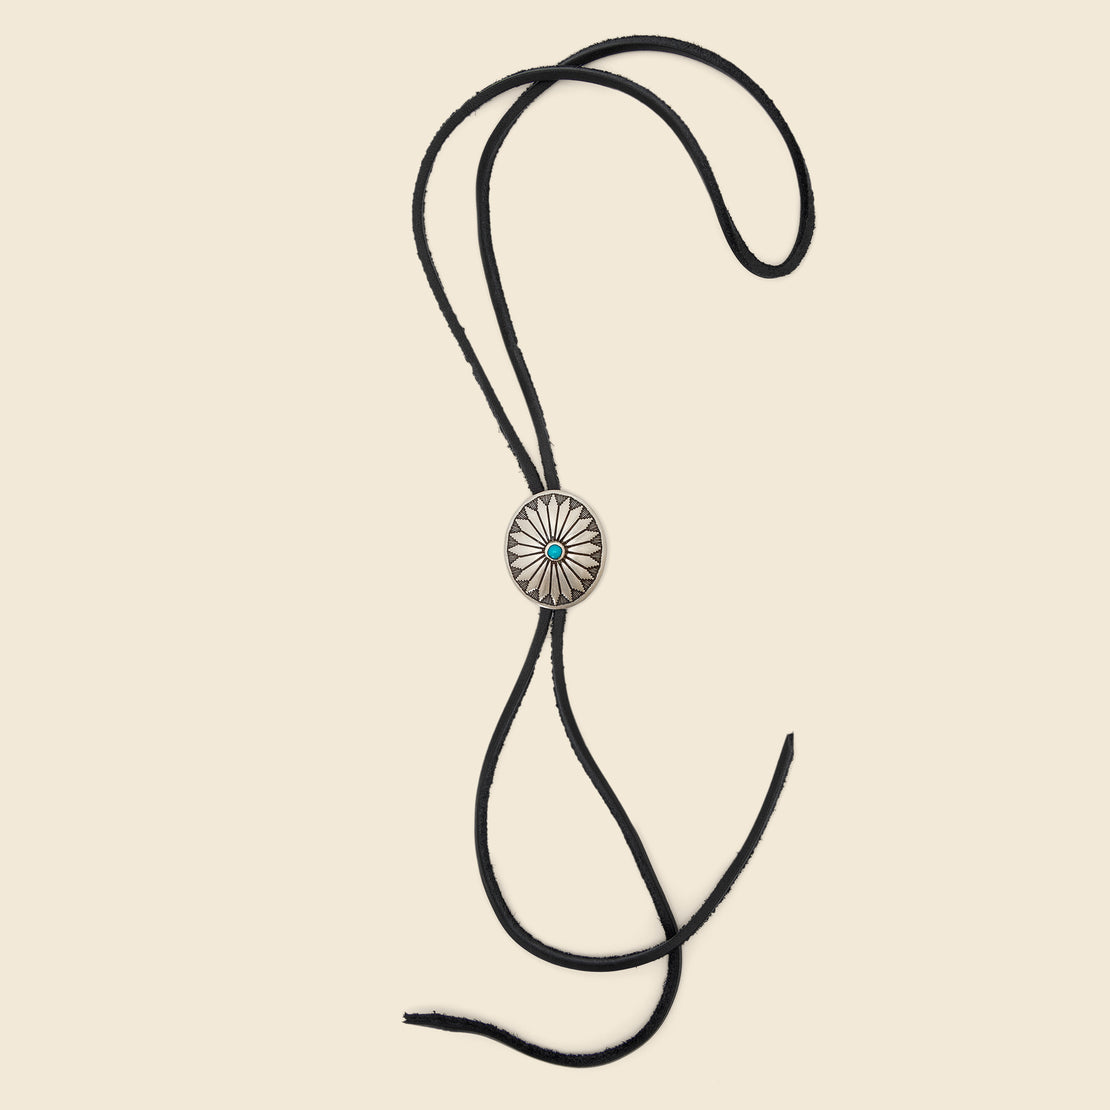 Yuketen Leather Bolo Tie with Concho - Black & Turquoise Flower